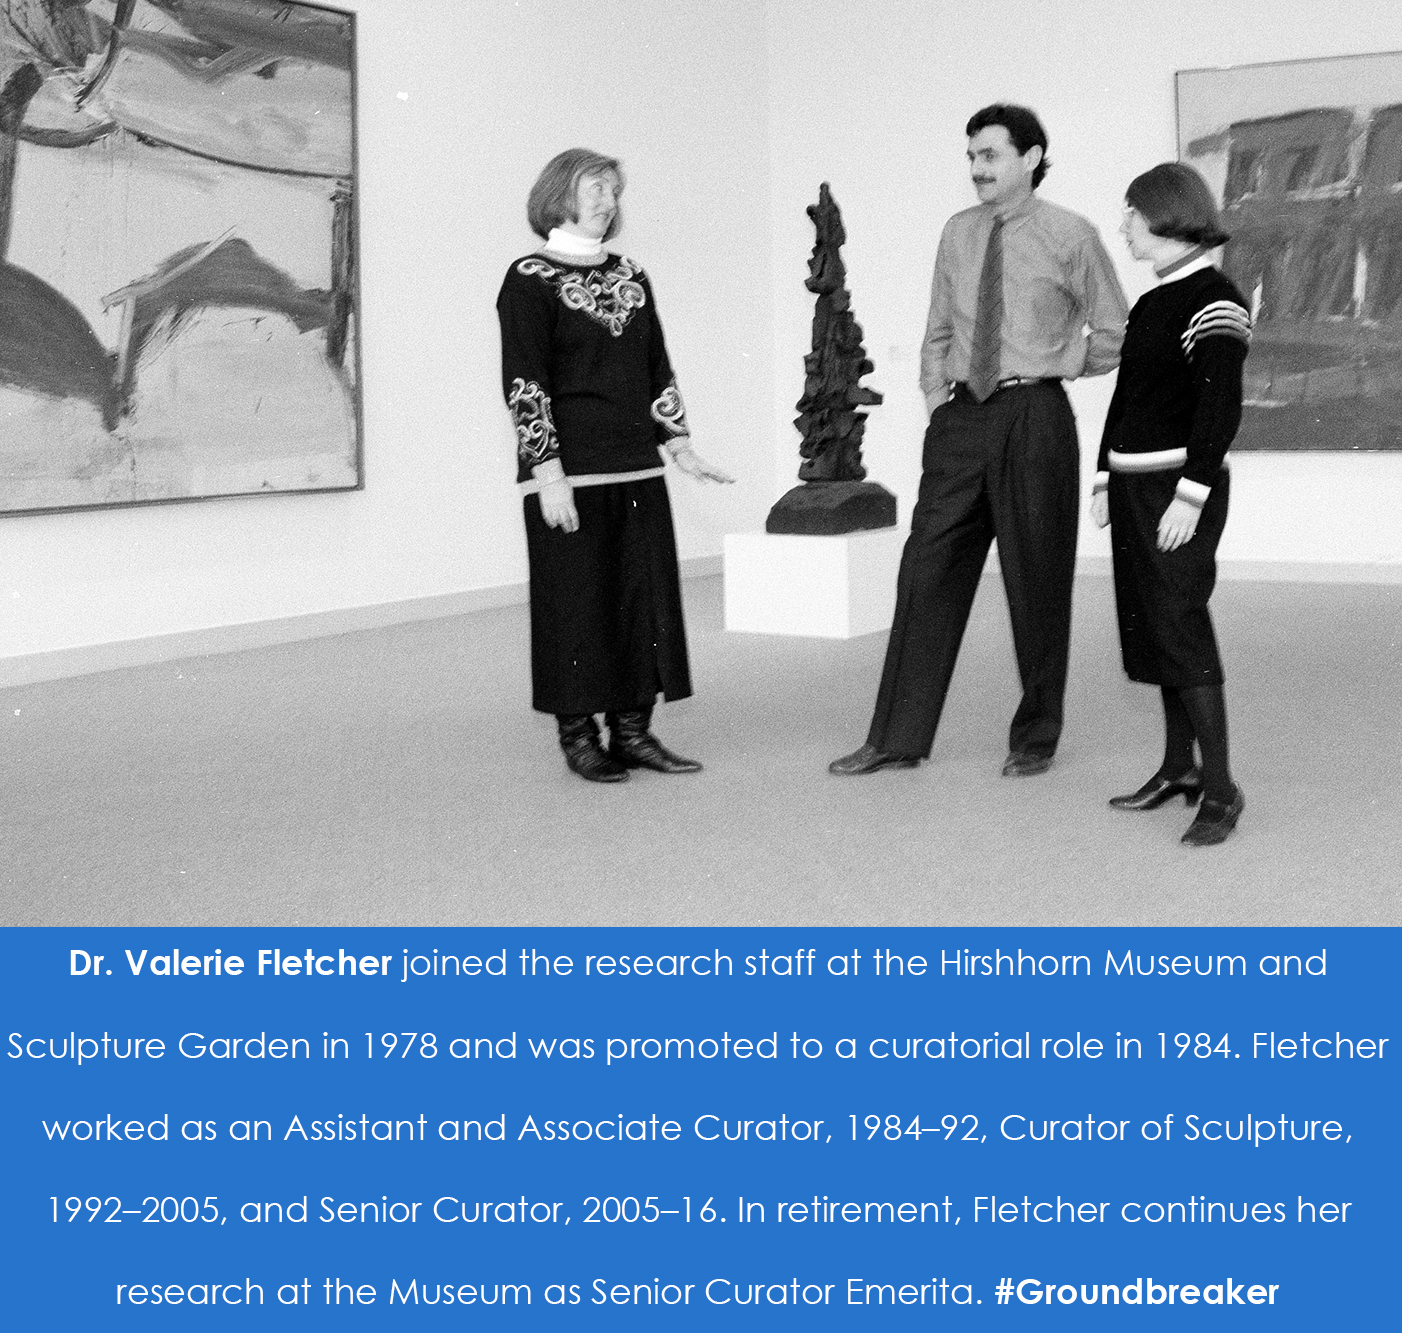 Valerie Fletcher stands and talks with two other people in a gallery space in front of a sculpture a